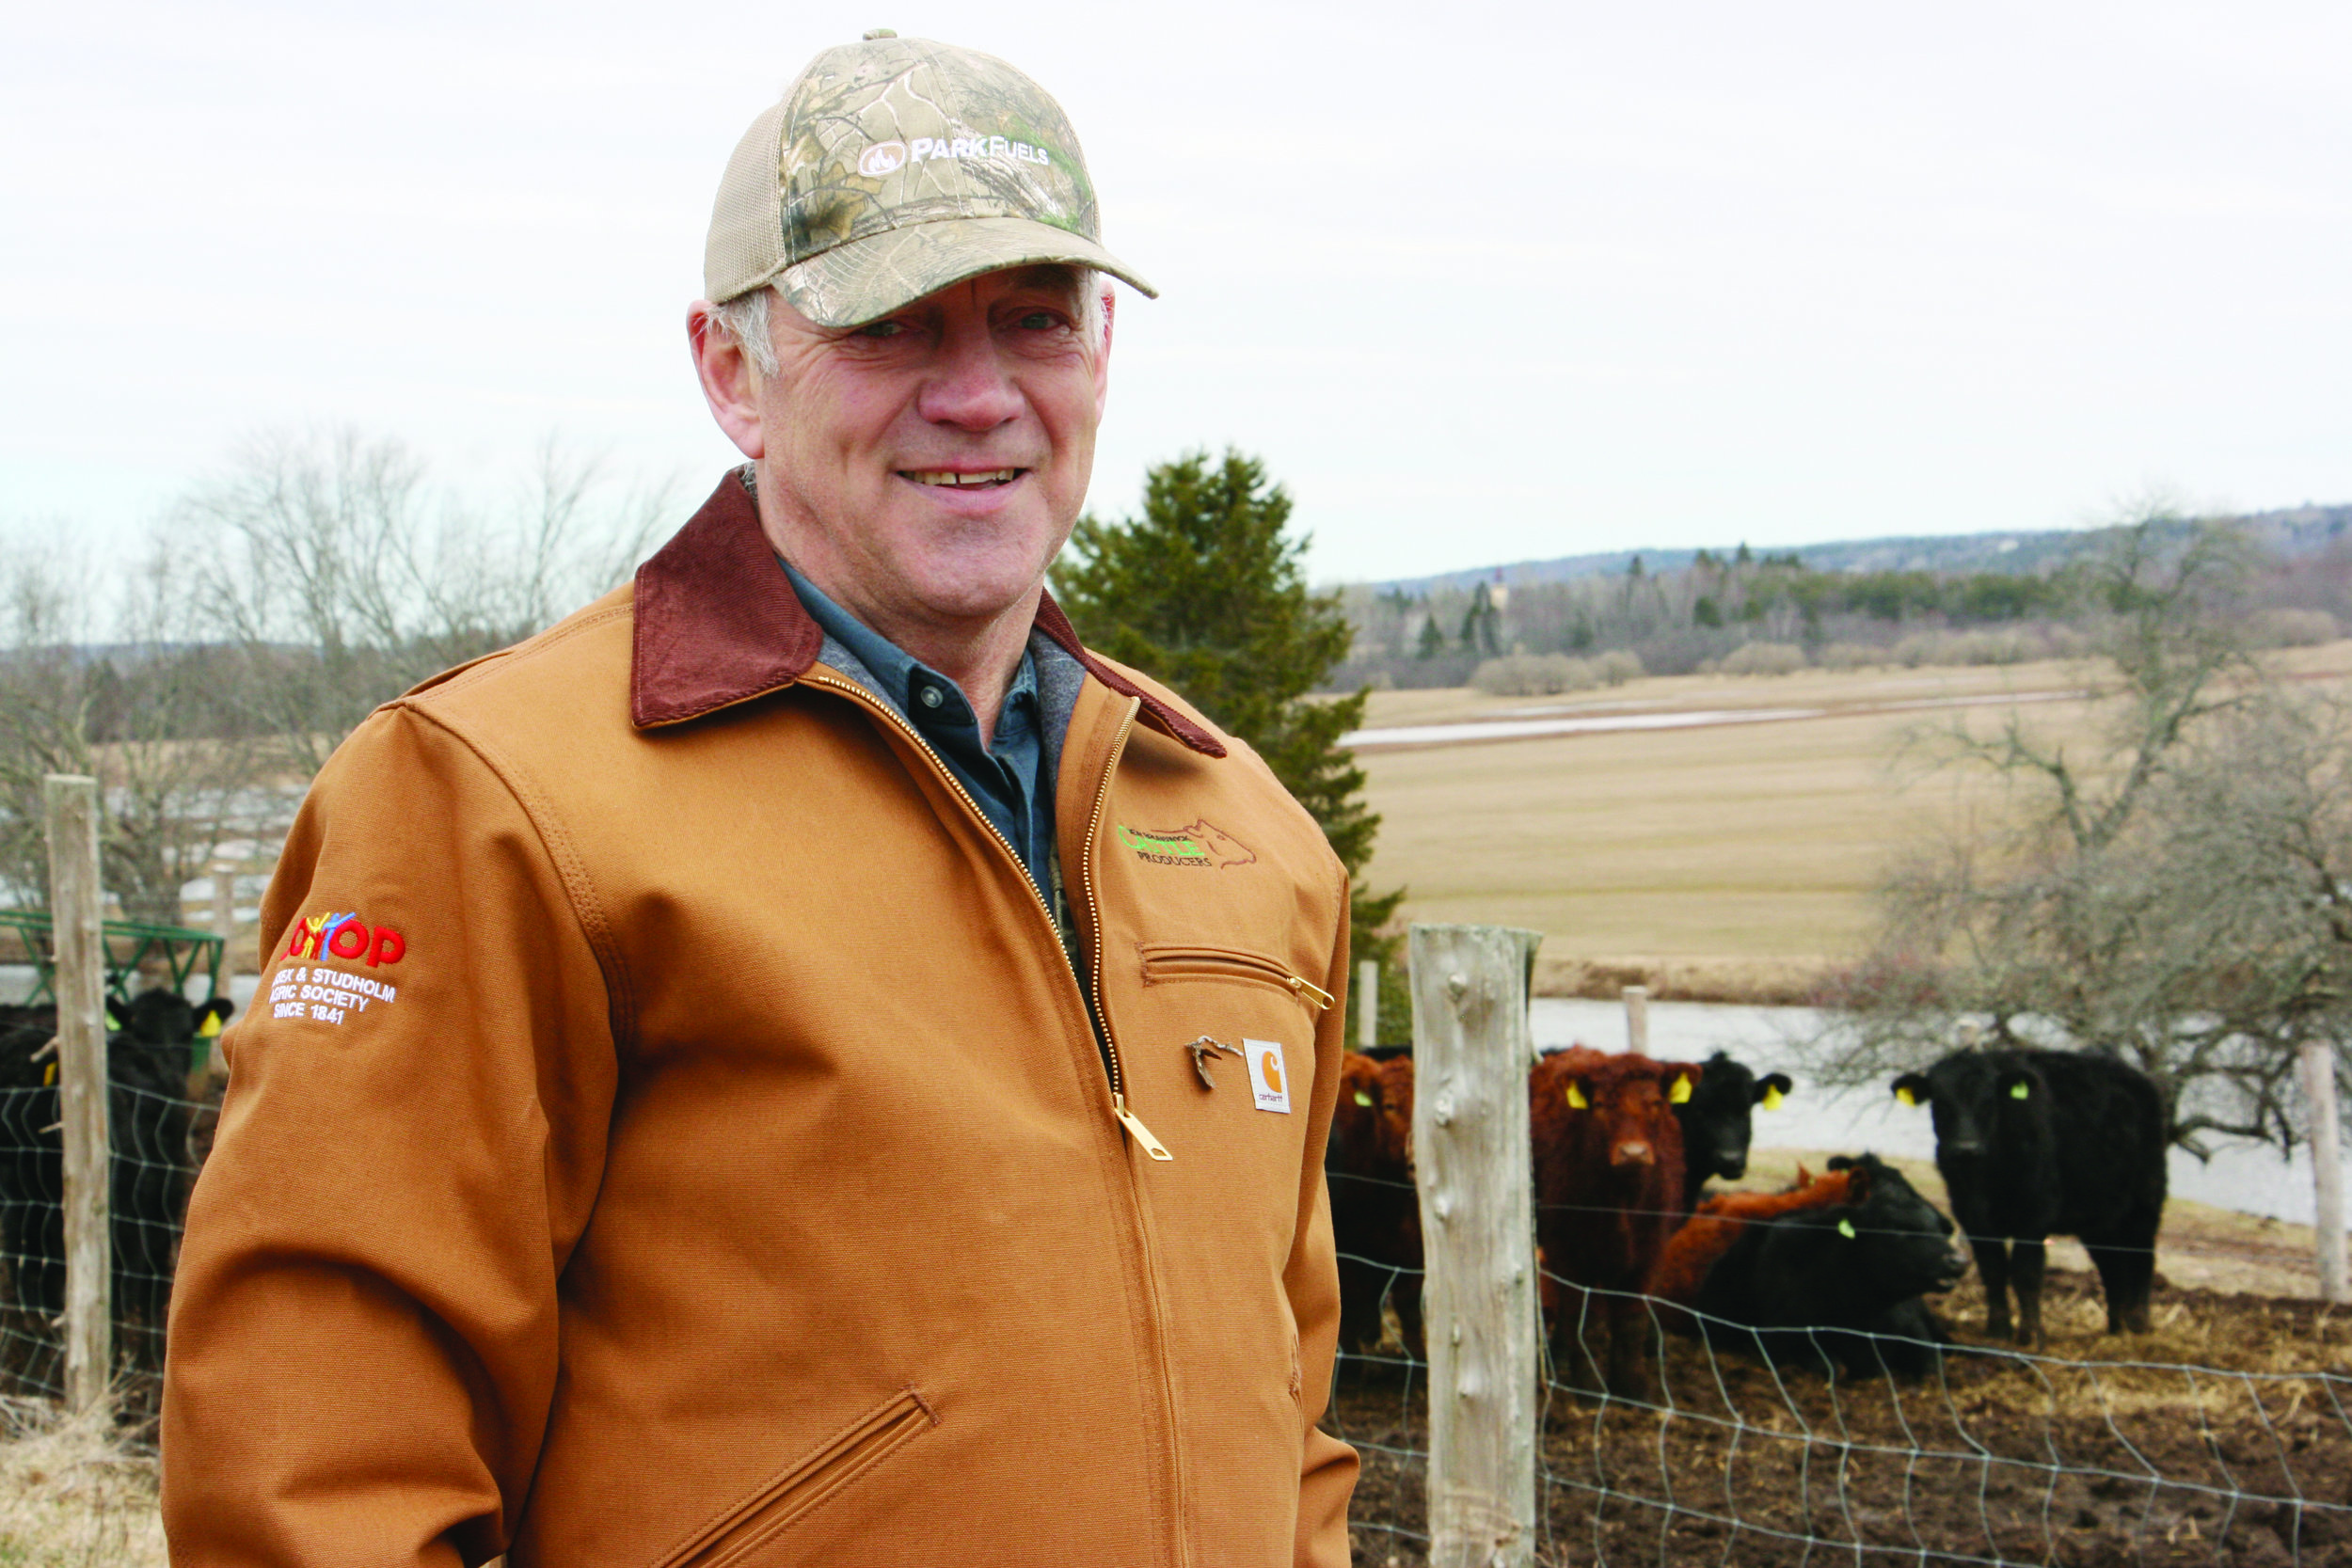 Don Bettle on his family's Point Farm on the outskirts of Hampton, N.B. (George Fullerton photos)